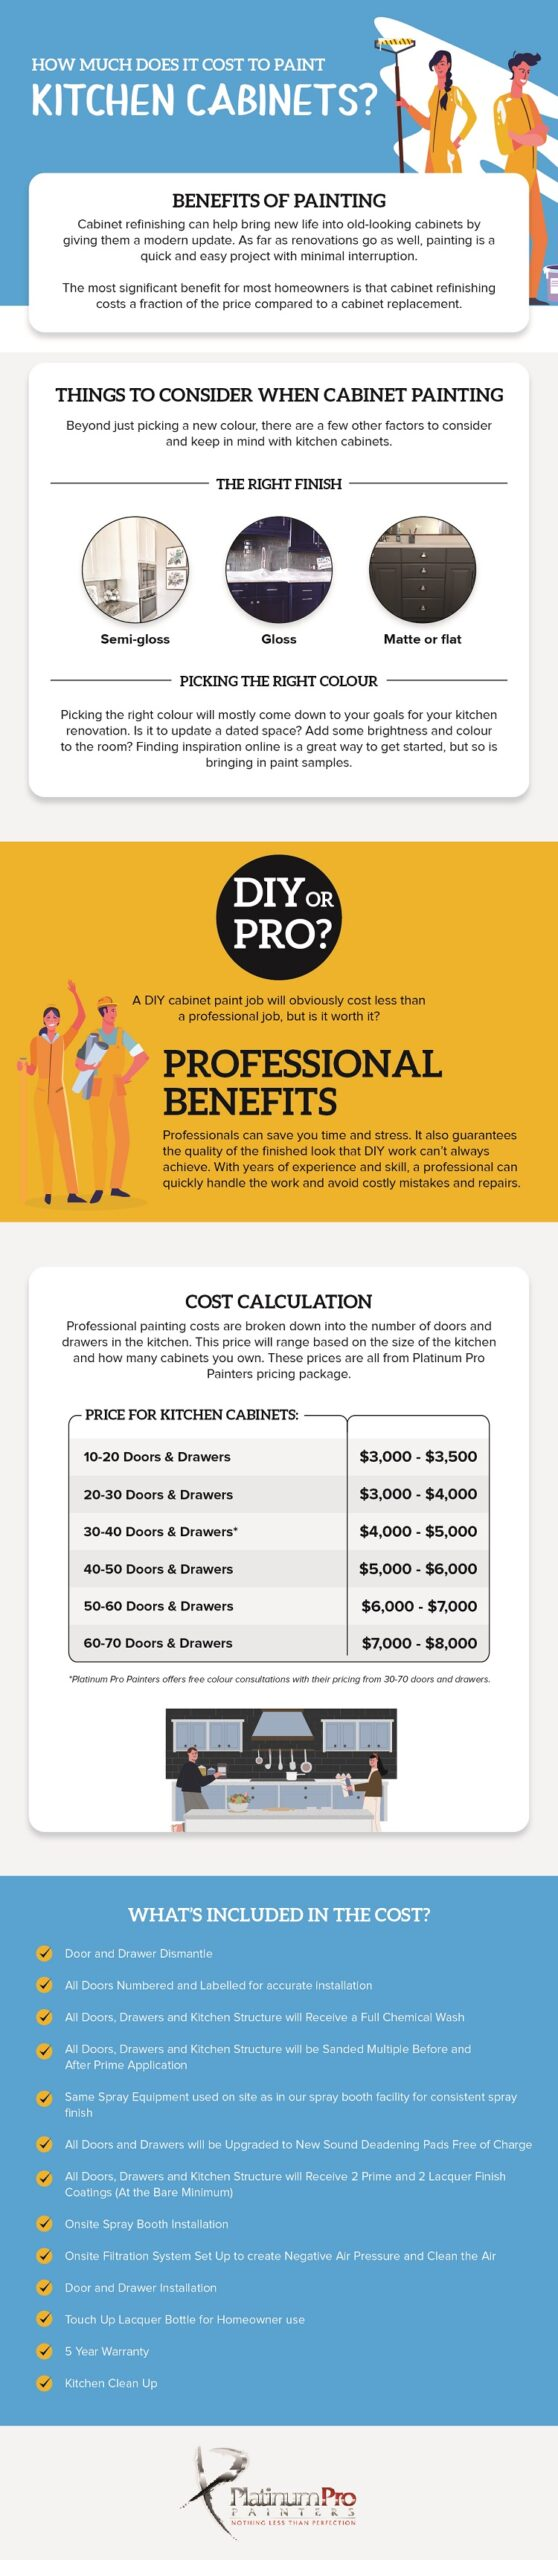 How Much Does It Cost To Paint Kitchen Cabinets